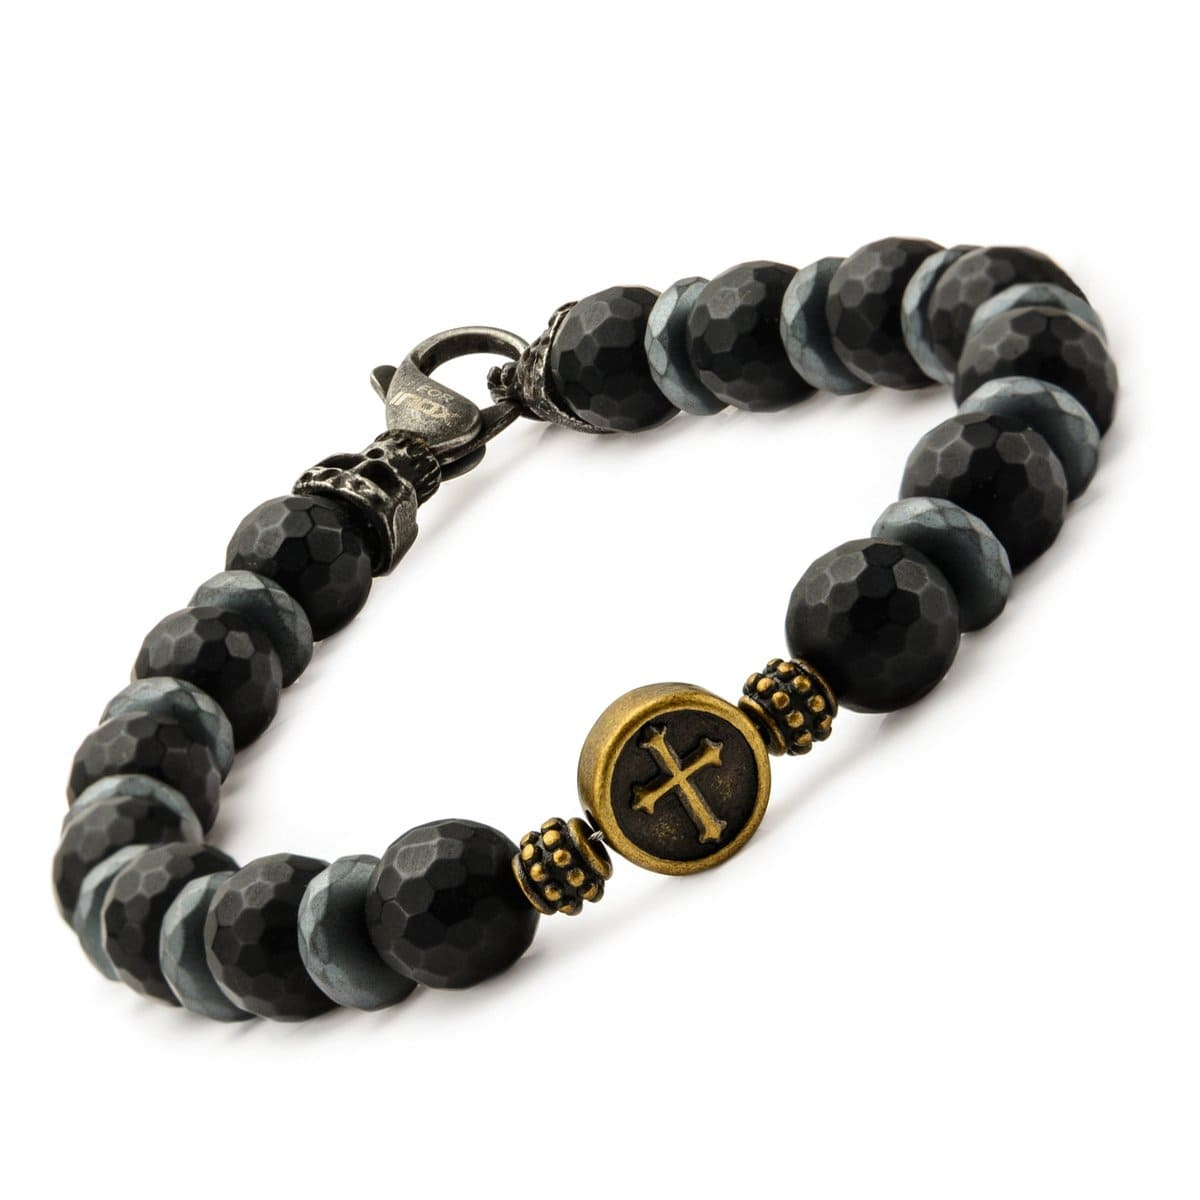 Black & Gold Stainless Steel with Black Hematite Roberto Arichi Cross & Skull Bead Bracelet